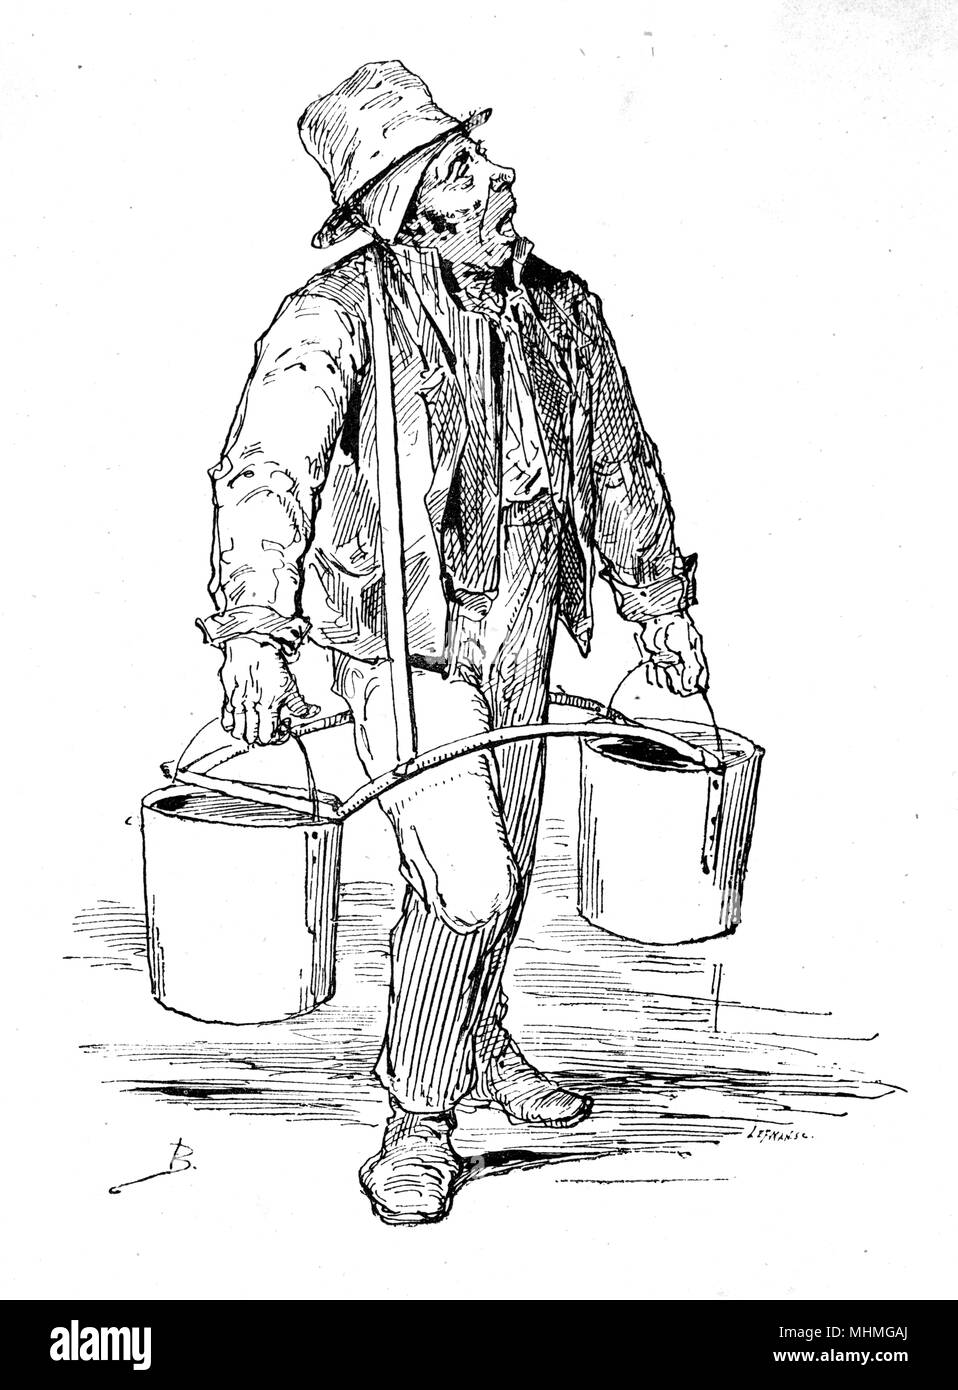 A Parisian water carrier carrying two buckets on a yoke.      Date: circa 1875 - Stock Image